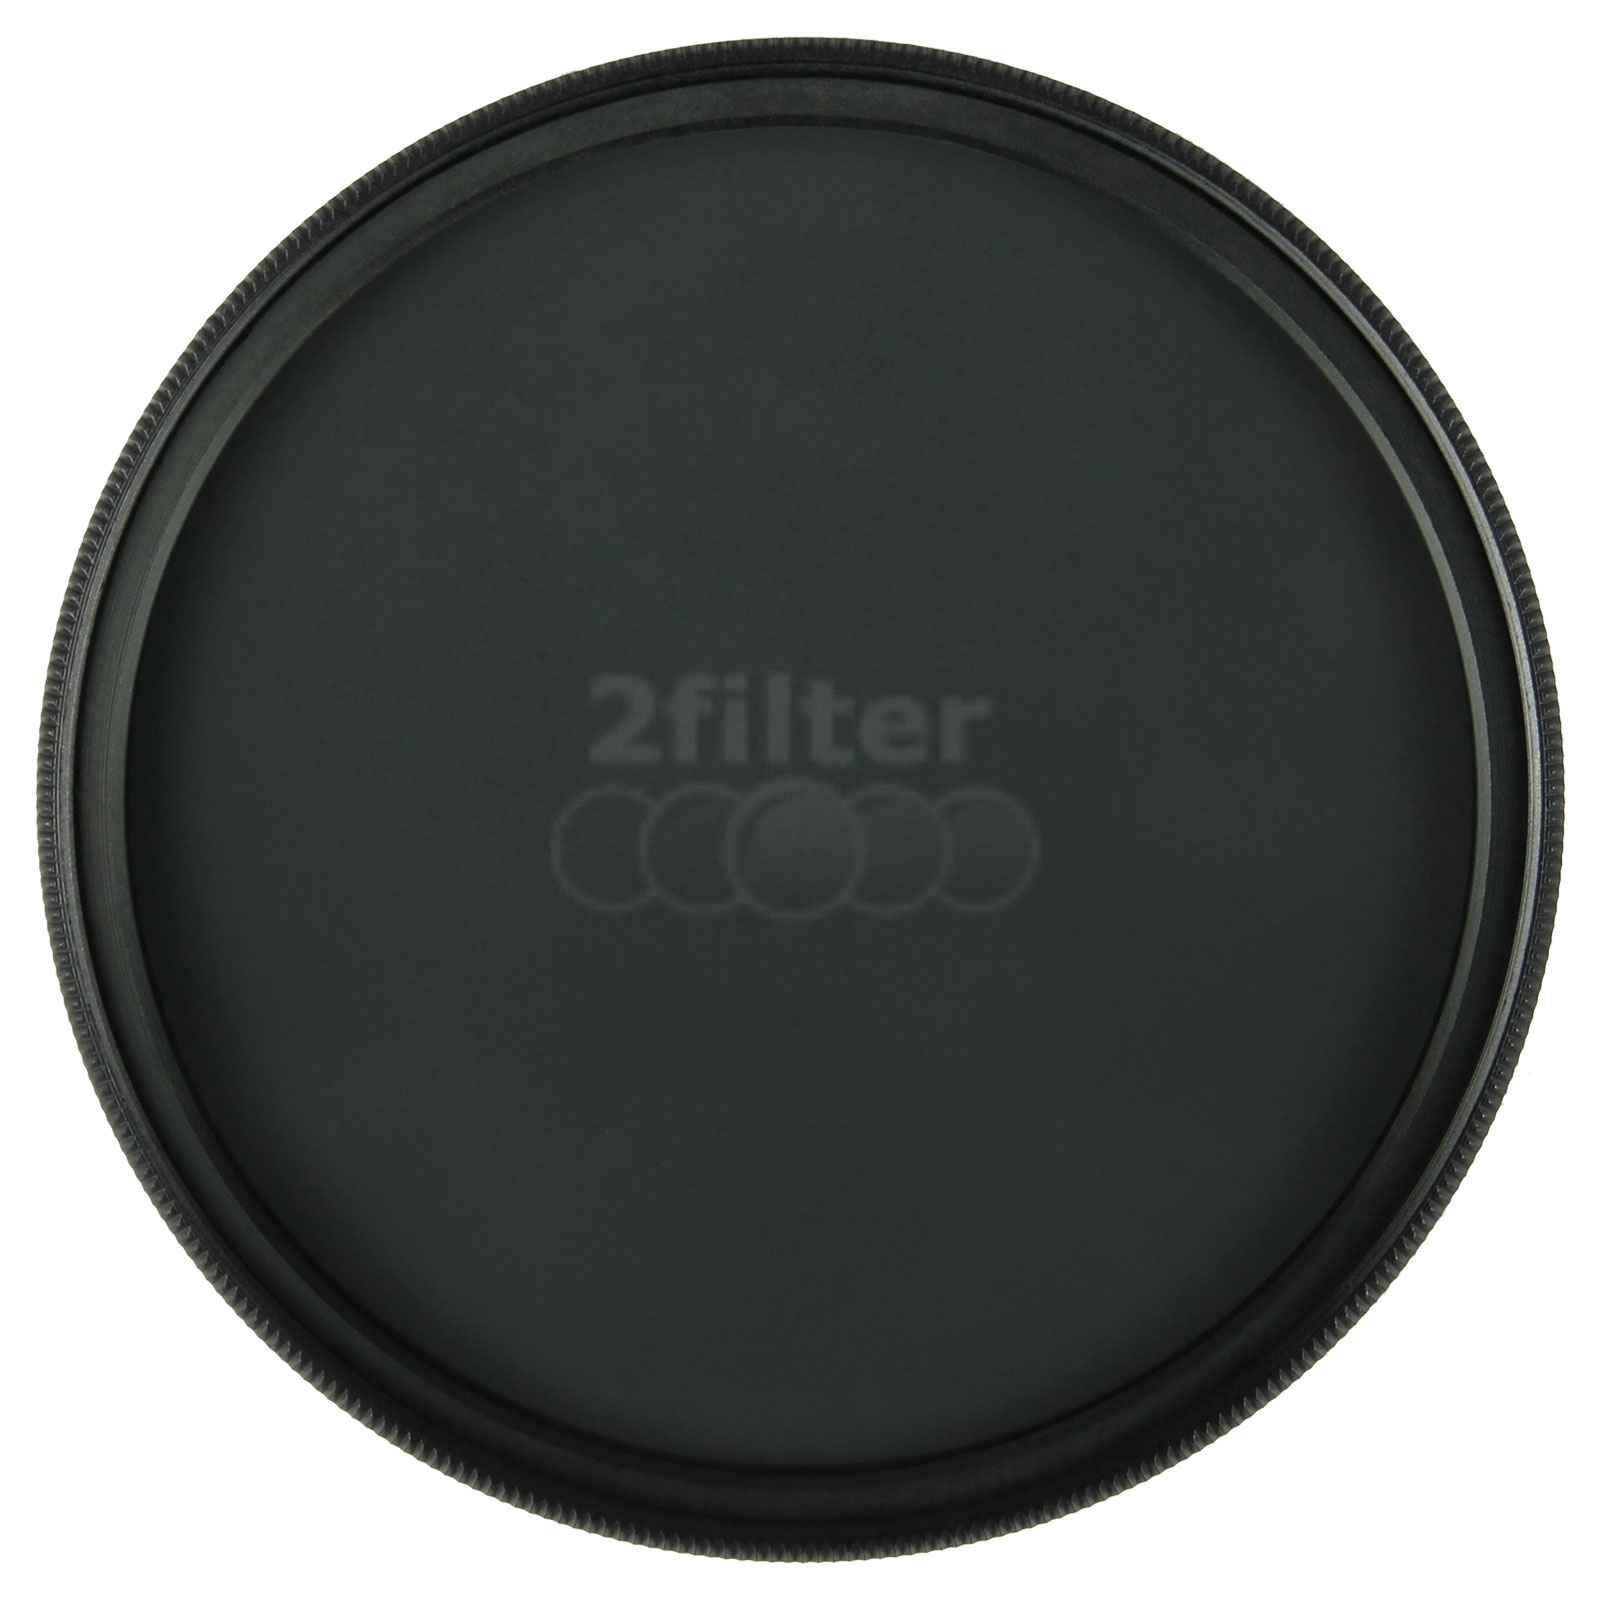 Standard-ND-0.6-Filter-Top-Down